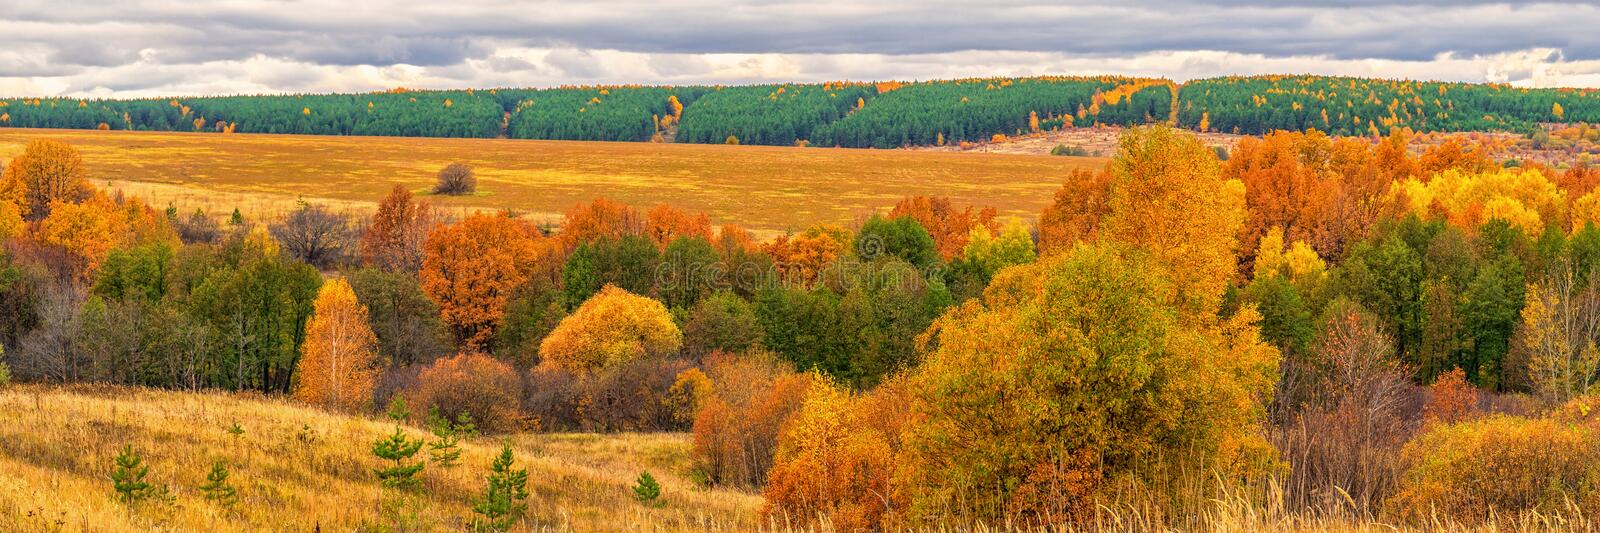 Picturesque autumn landscape in green and yellow colors. Panoramic view from hill to lowland with grove and field in cloudy day. royalty free stock images